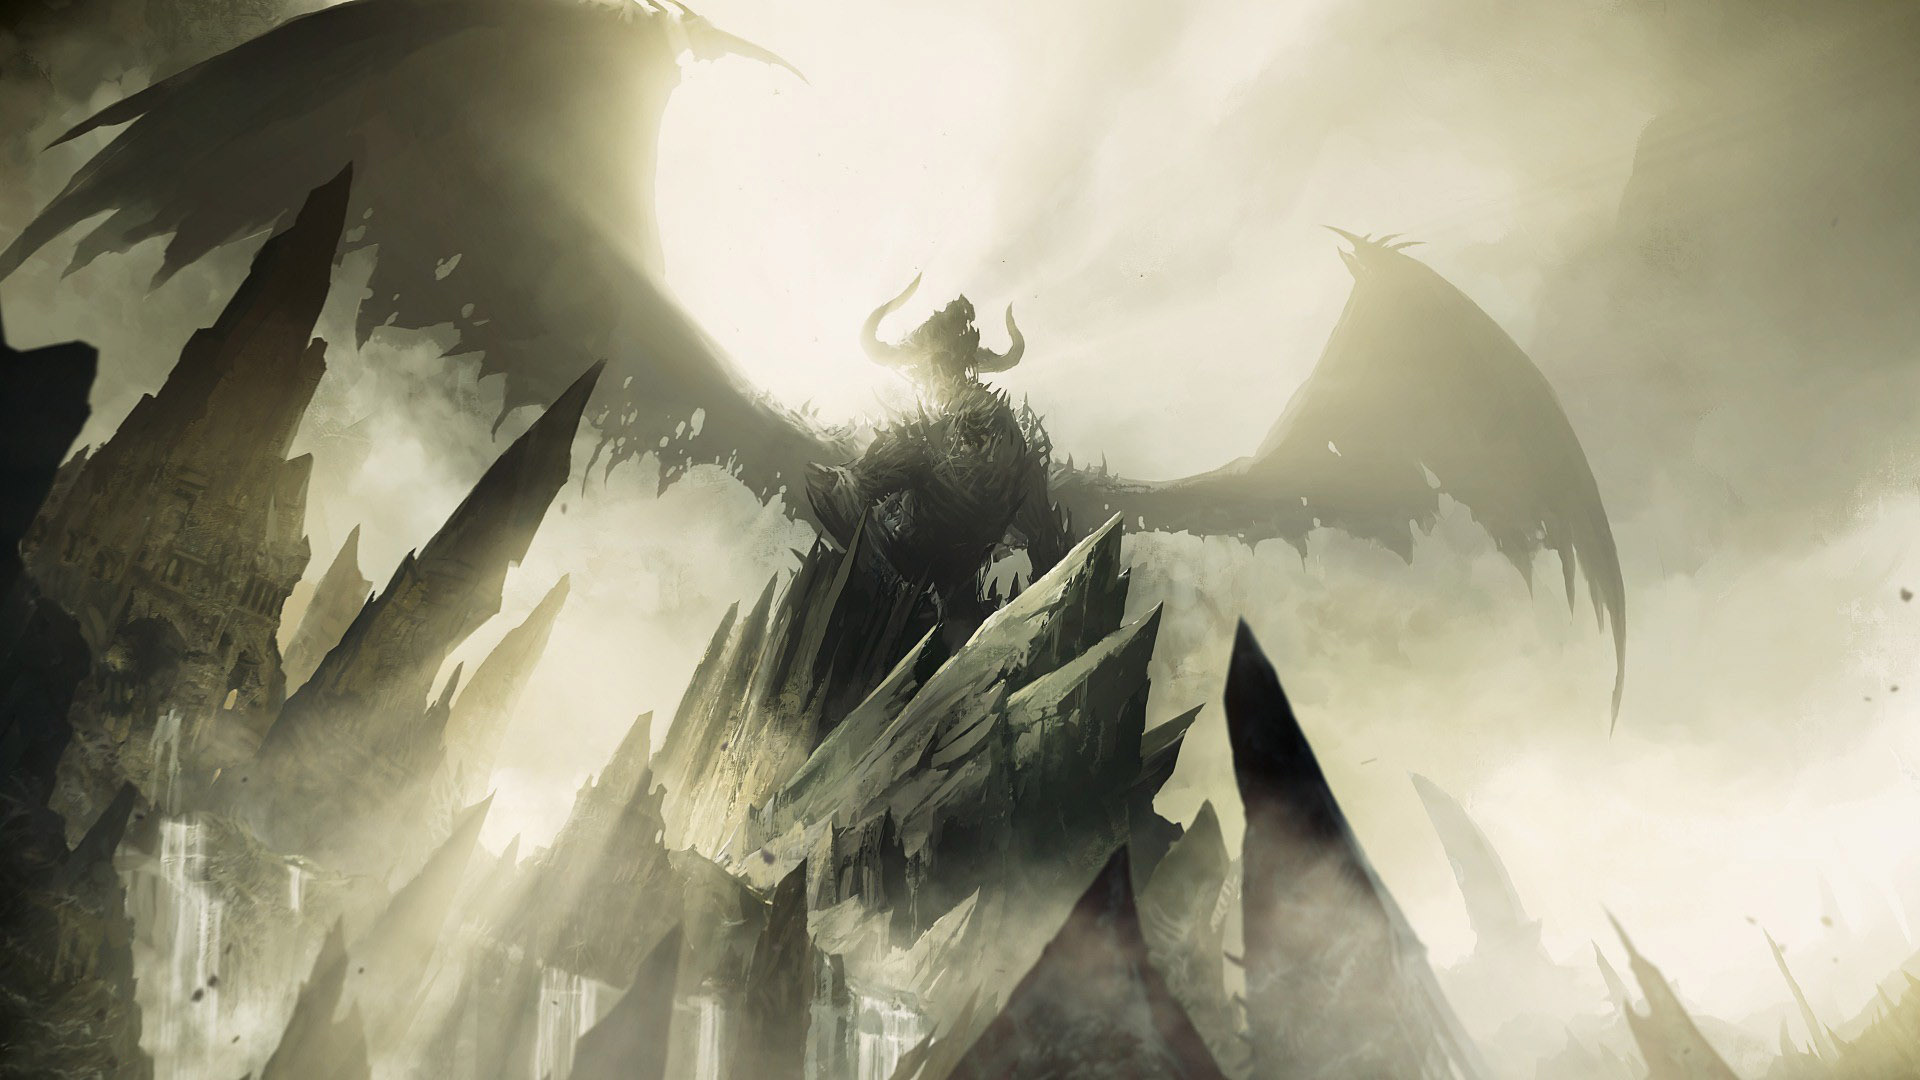 Free Download Guild Wars 2 Dragon Wallpaper 122957 1920x1080 For